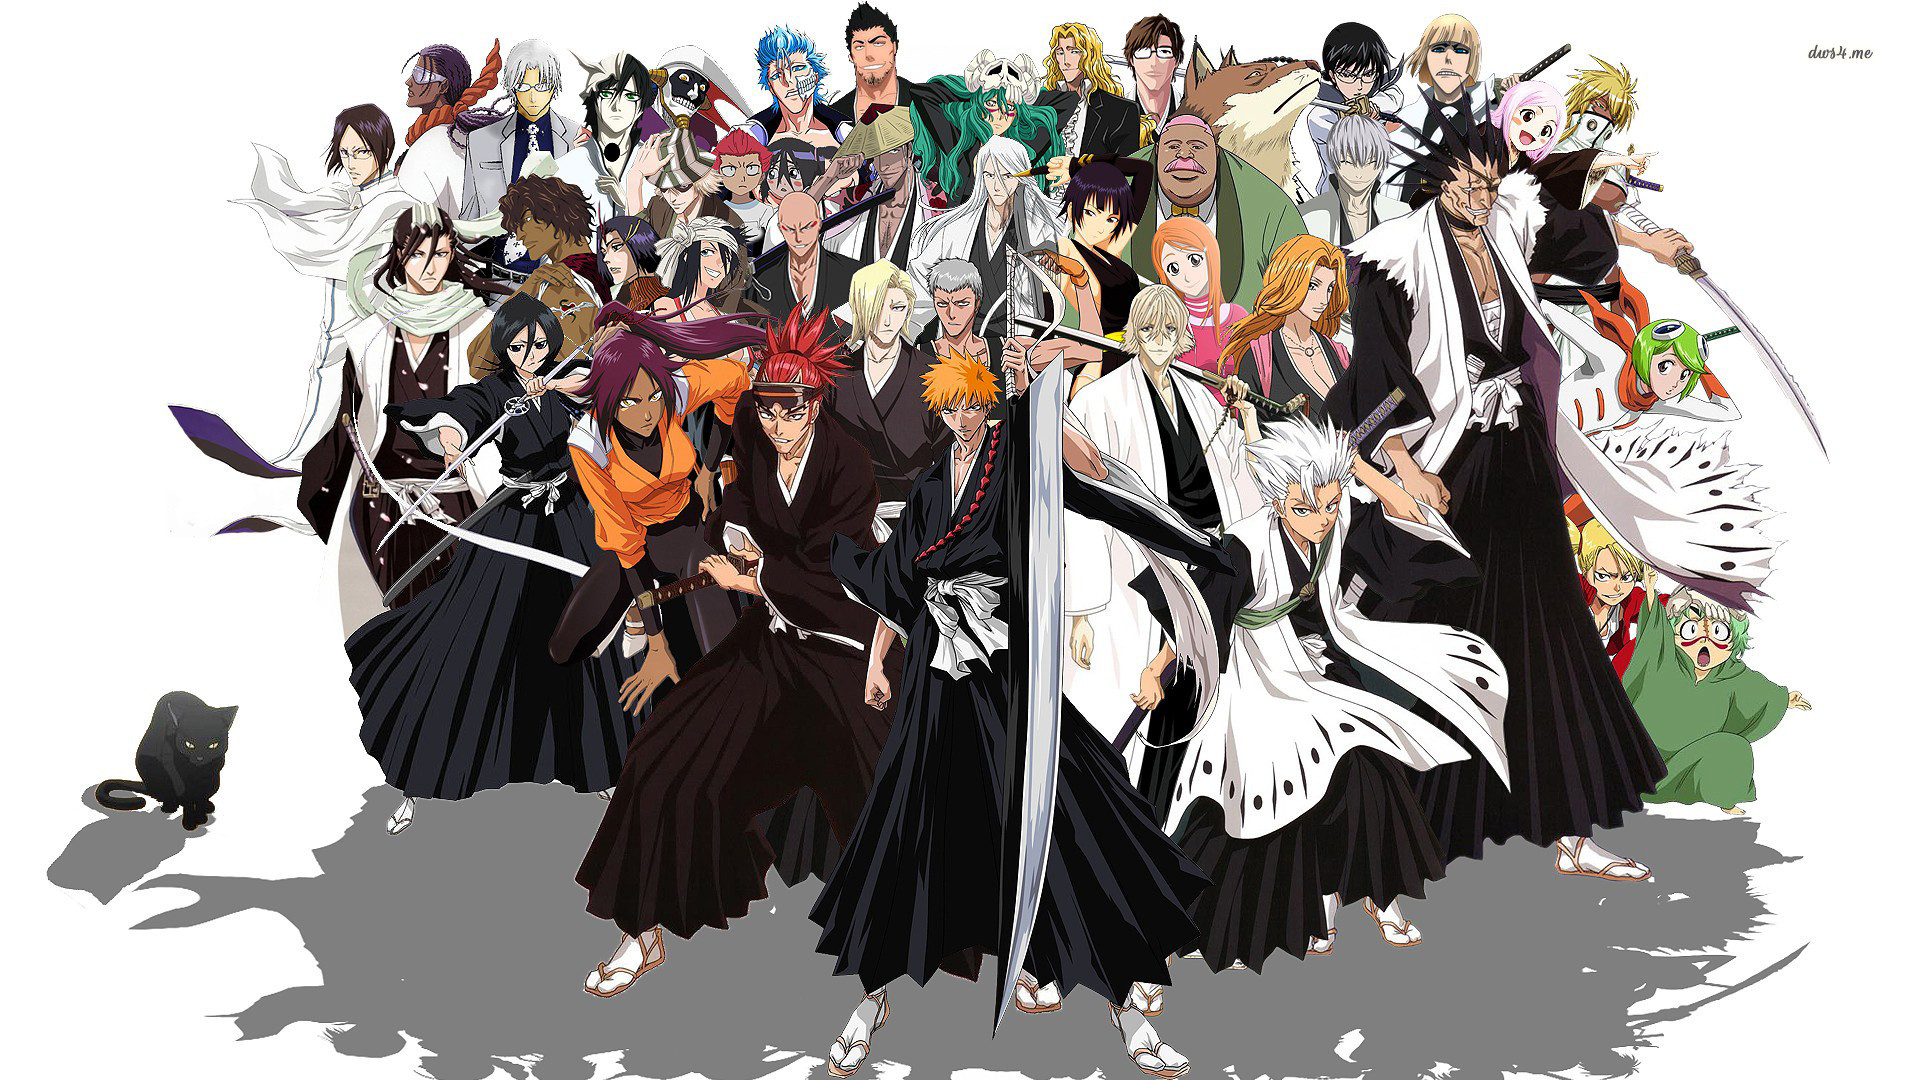 1920x1080 Bleach Wallpaper | Bleach Cartoon Images | Free Bleach Wallpapers | #31